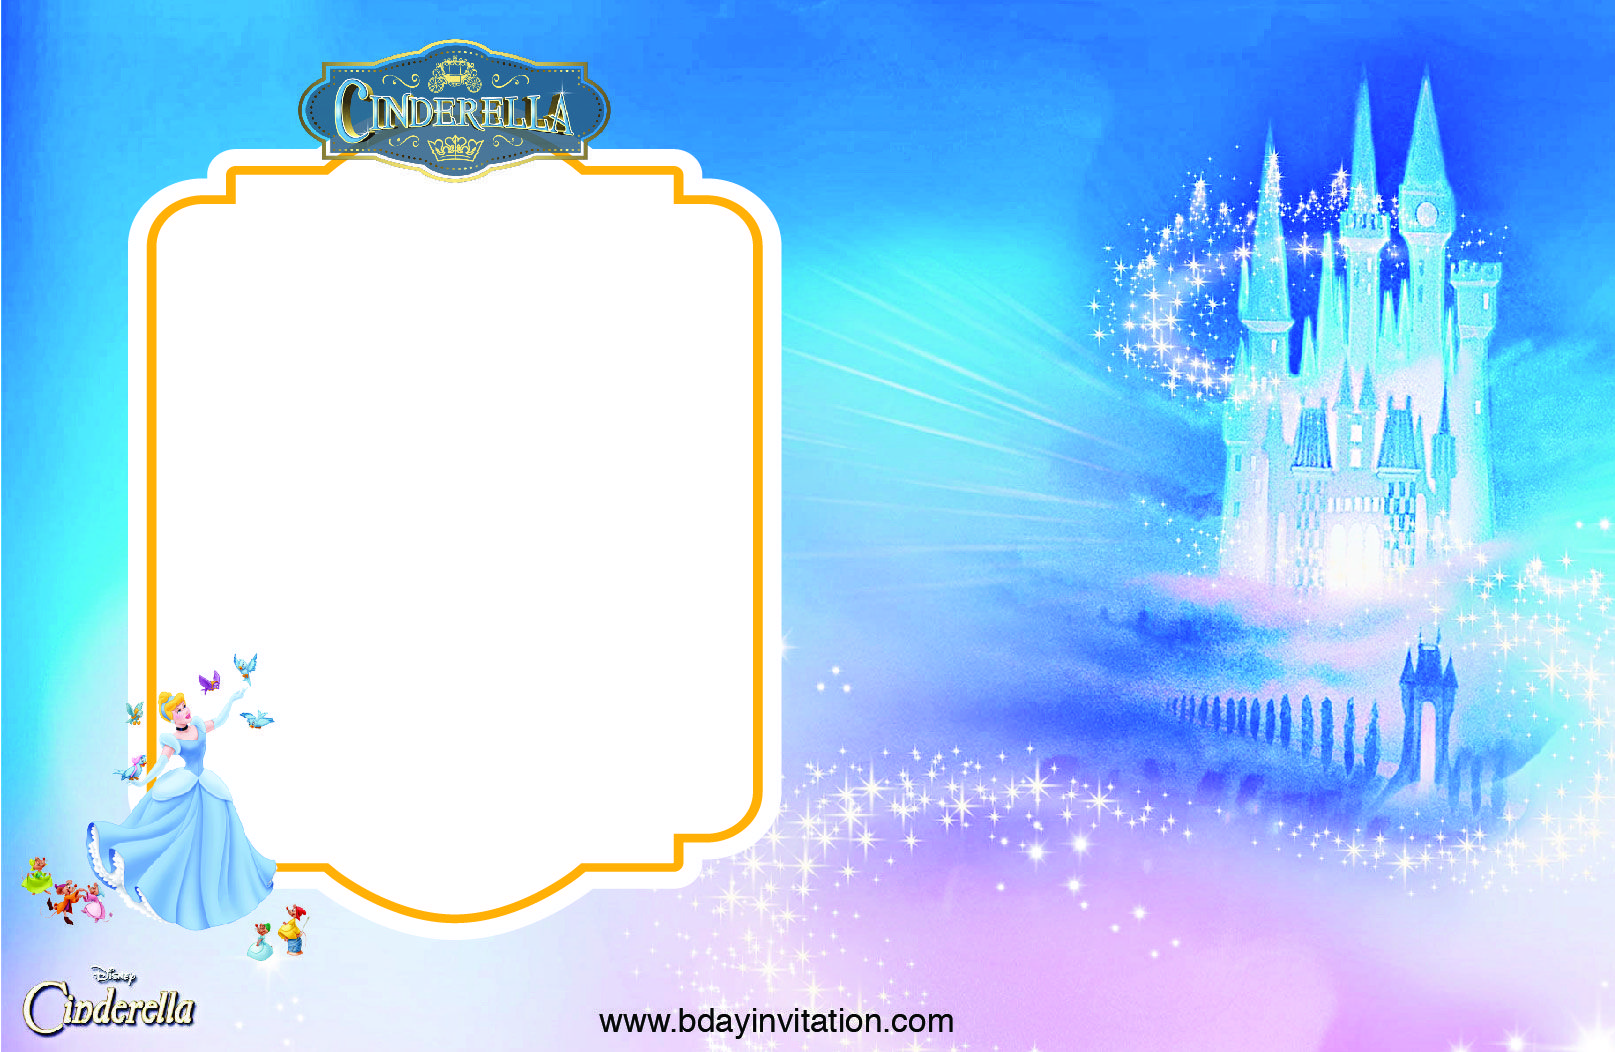 Get FREE Printable Disney Cinderella Party Invitation